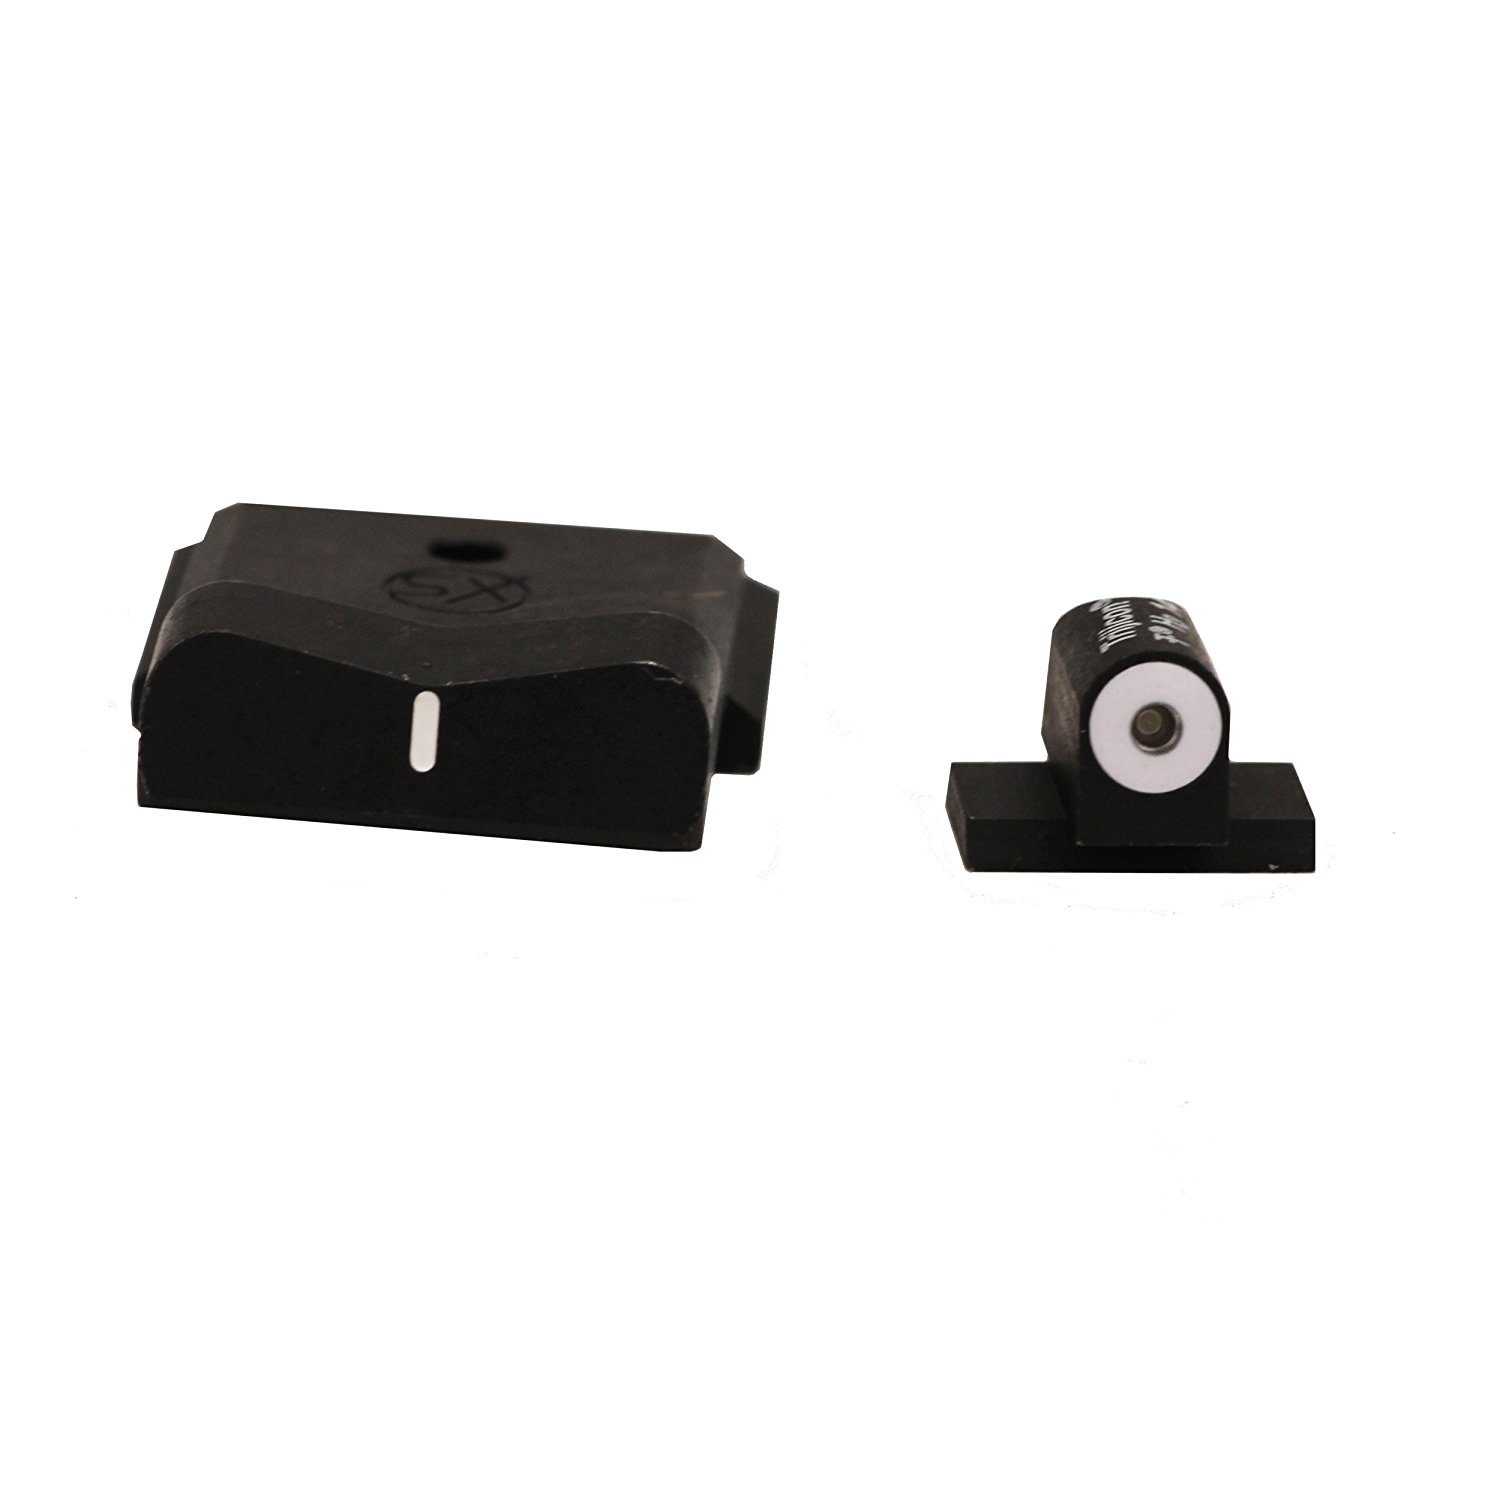 XS Sight Systems SW-0024S-3 Big Dot Tritium Express Front Sight with S&W M&P Shield